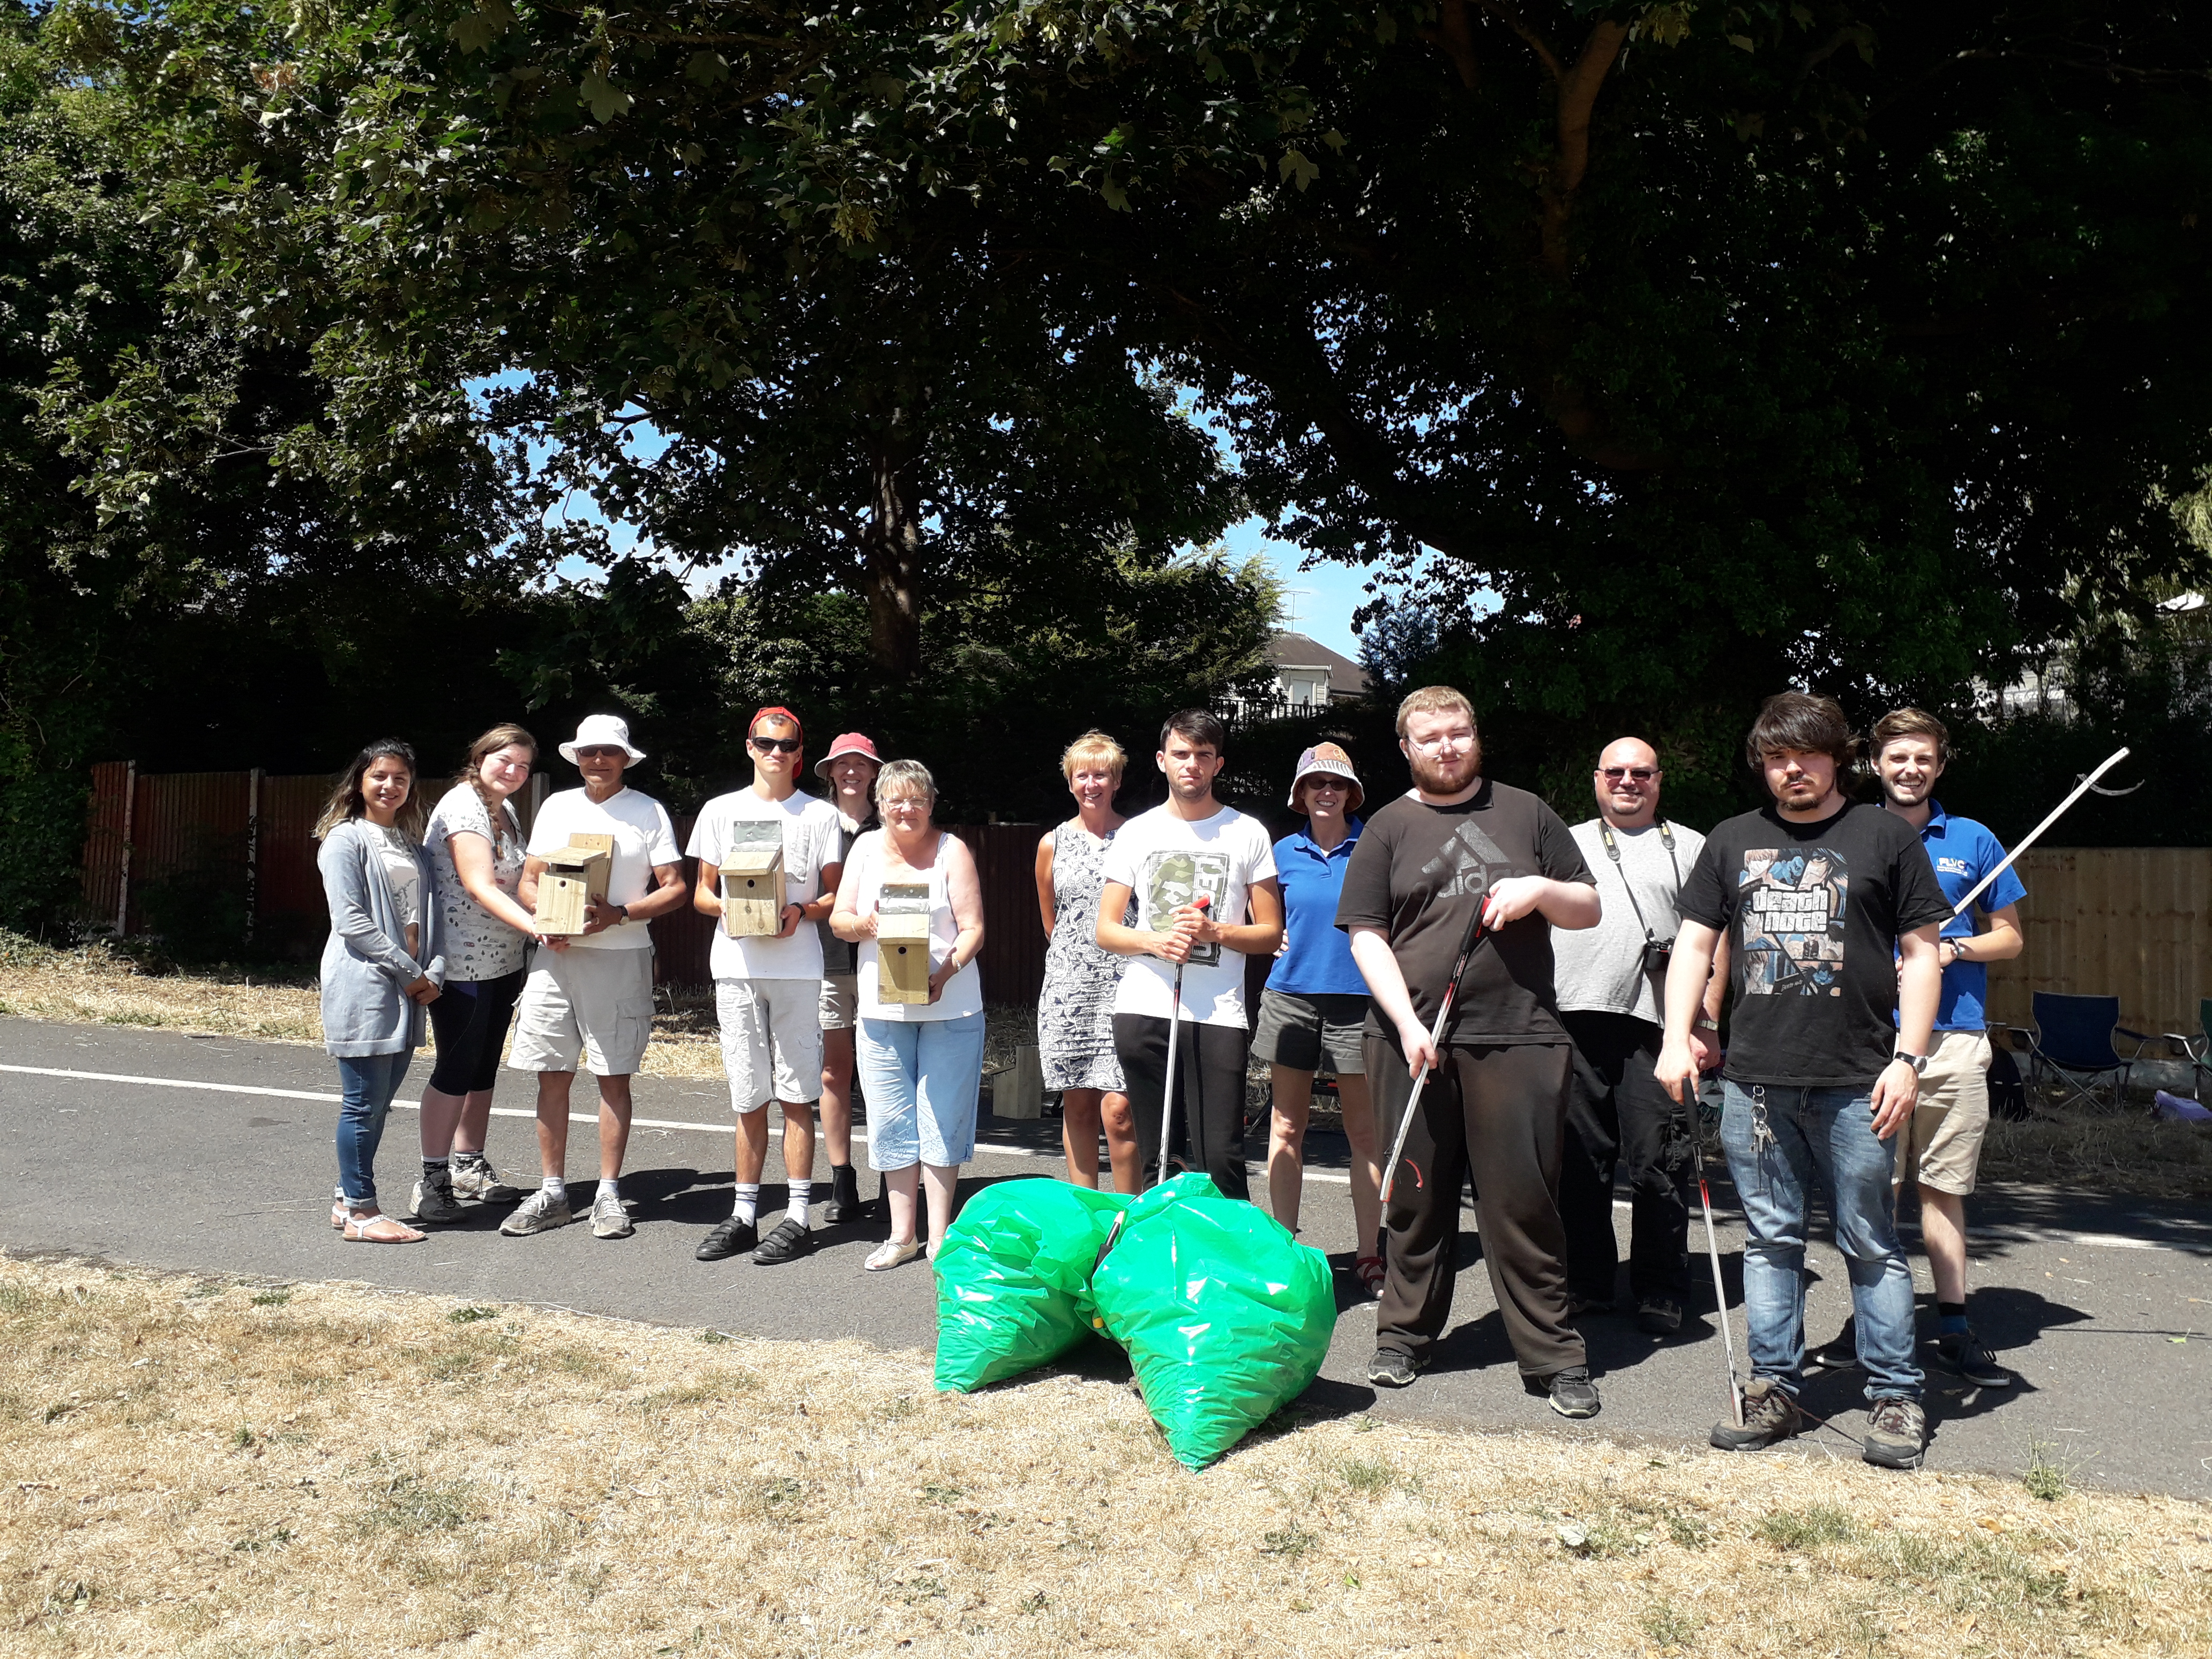 CANCELLED. Groundwork North Wales supports the Great Spring Clean 2020 by Keep Britain Tidy